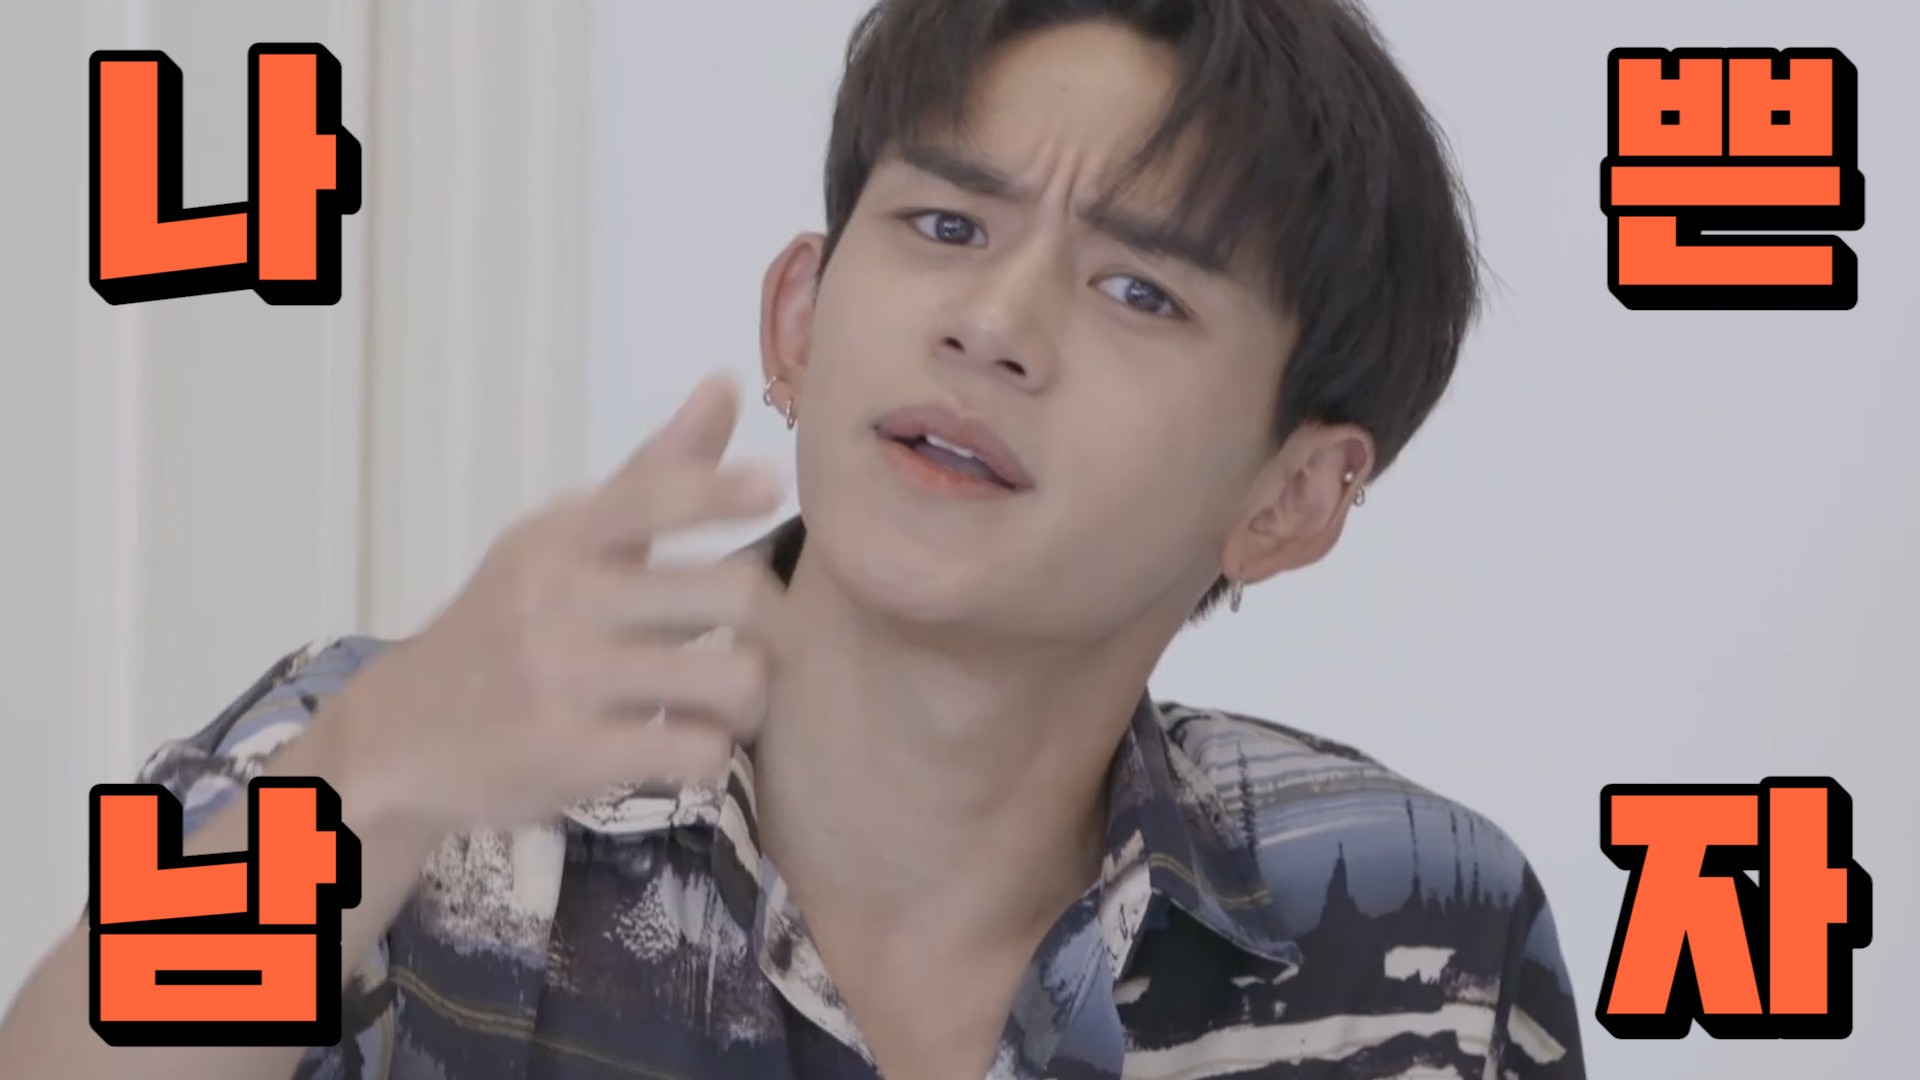 [WayV] 진짜 나쁜 남자다.. 👉 심장에 Bad하다는 뜻 (WayV making bad guy's facial expression)